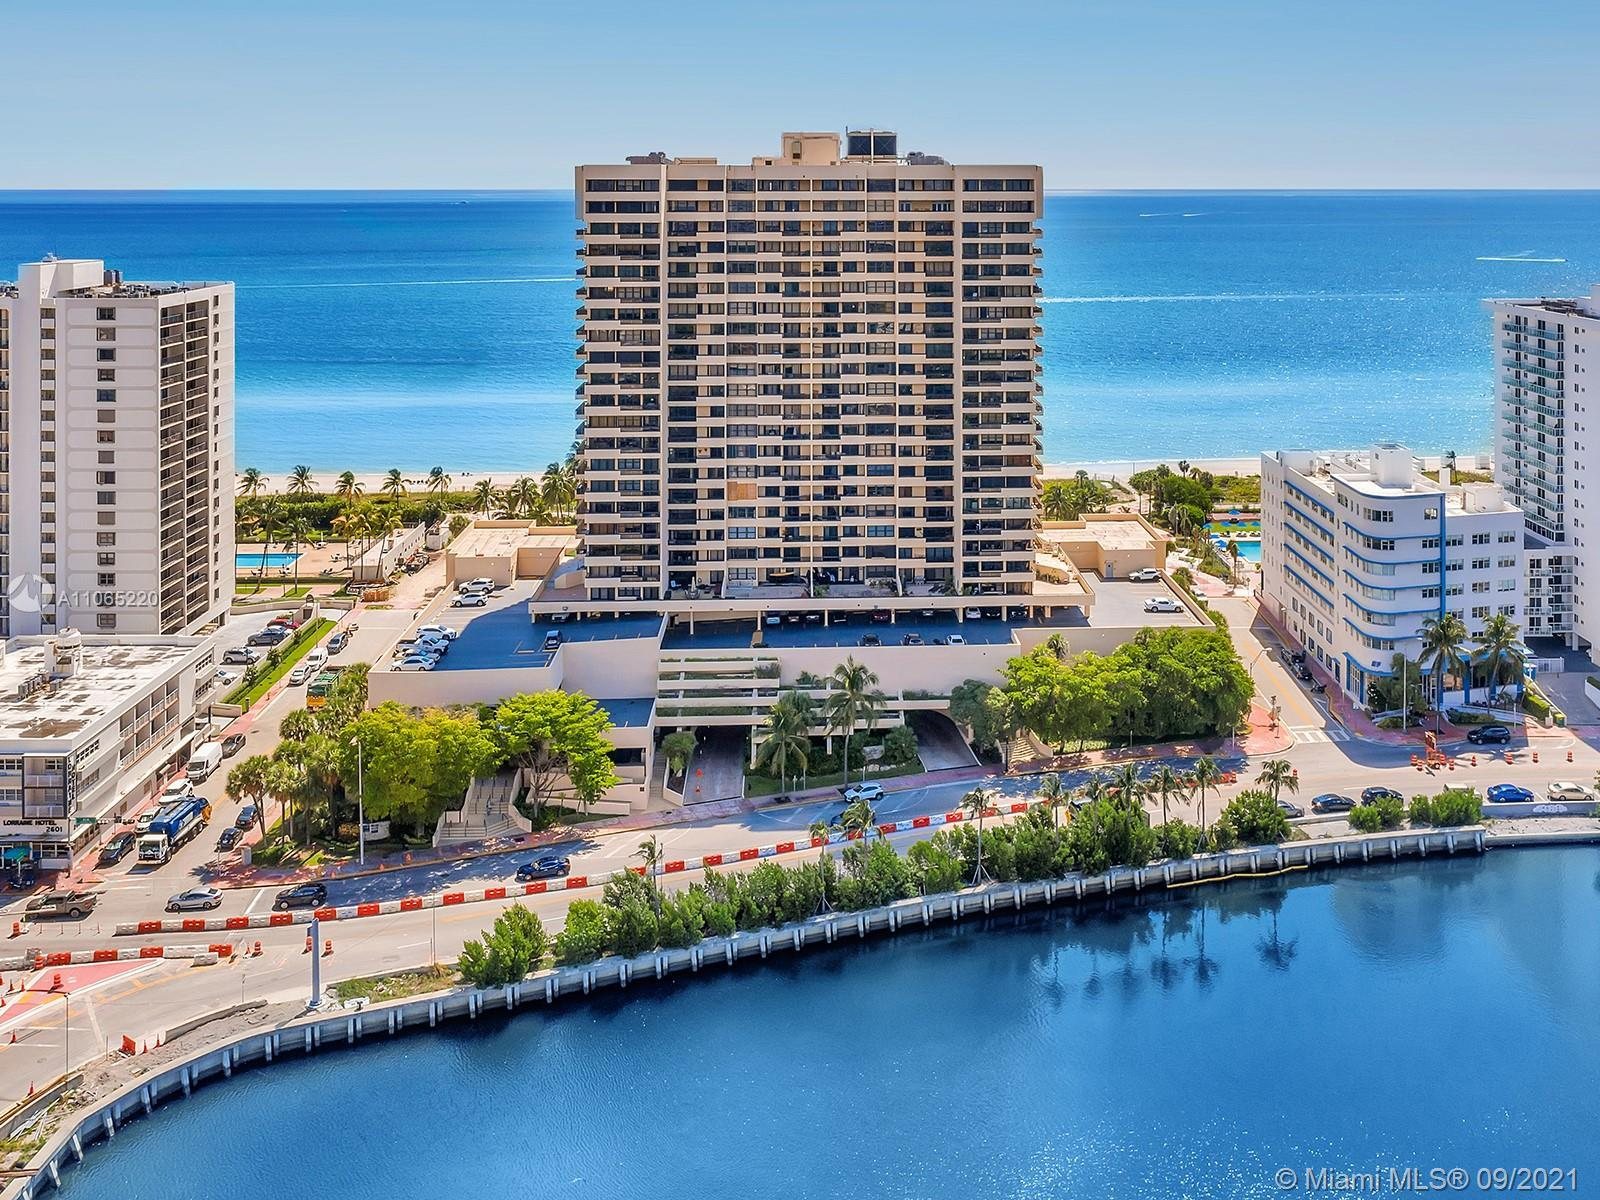 ***Reduced***Lovely 1 bedroom 1.5 bath beachfront condo in the best of Miami Beach, with spectacular